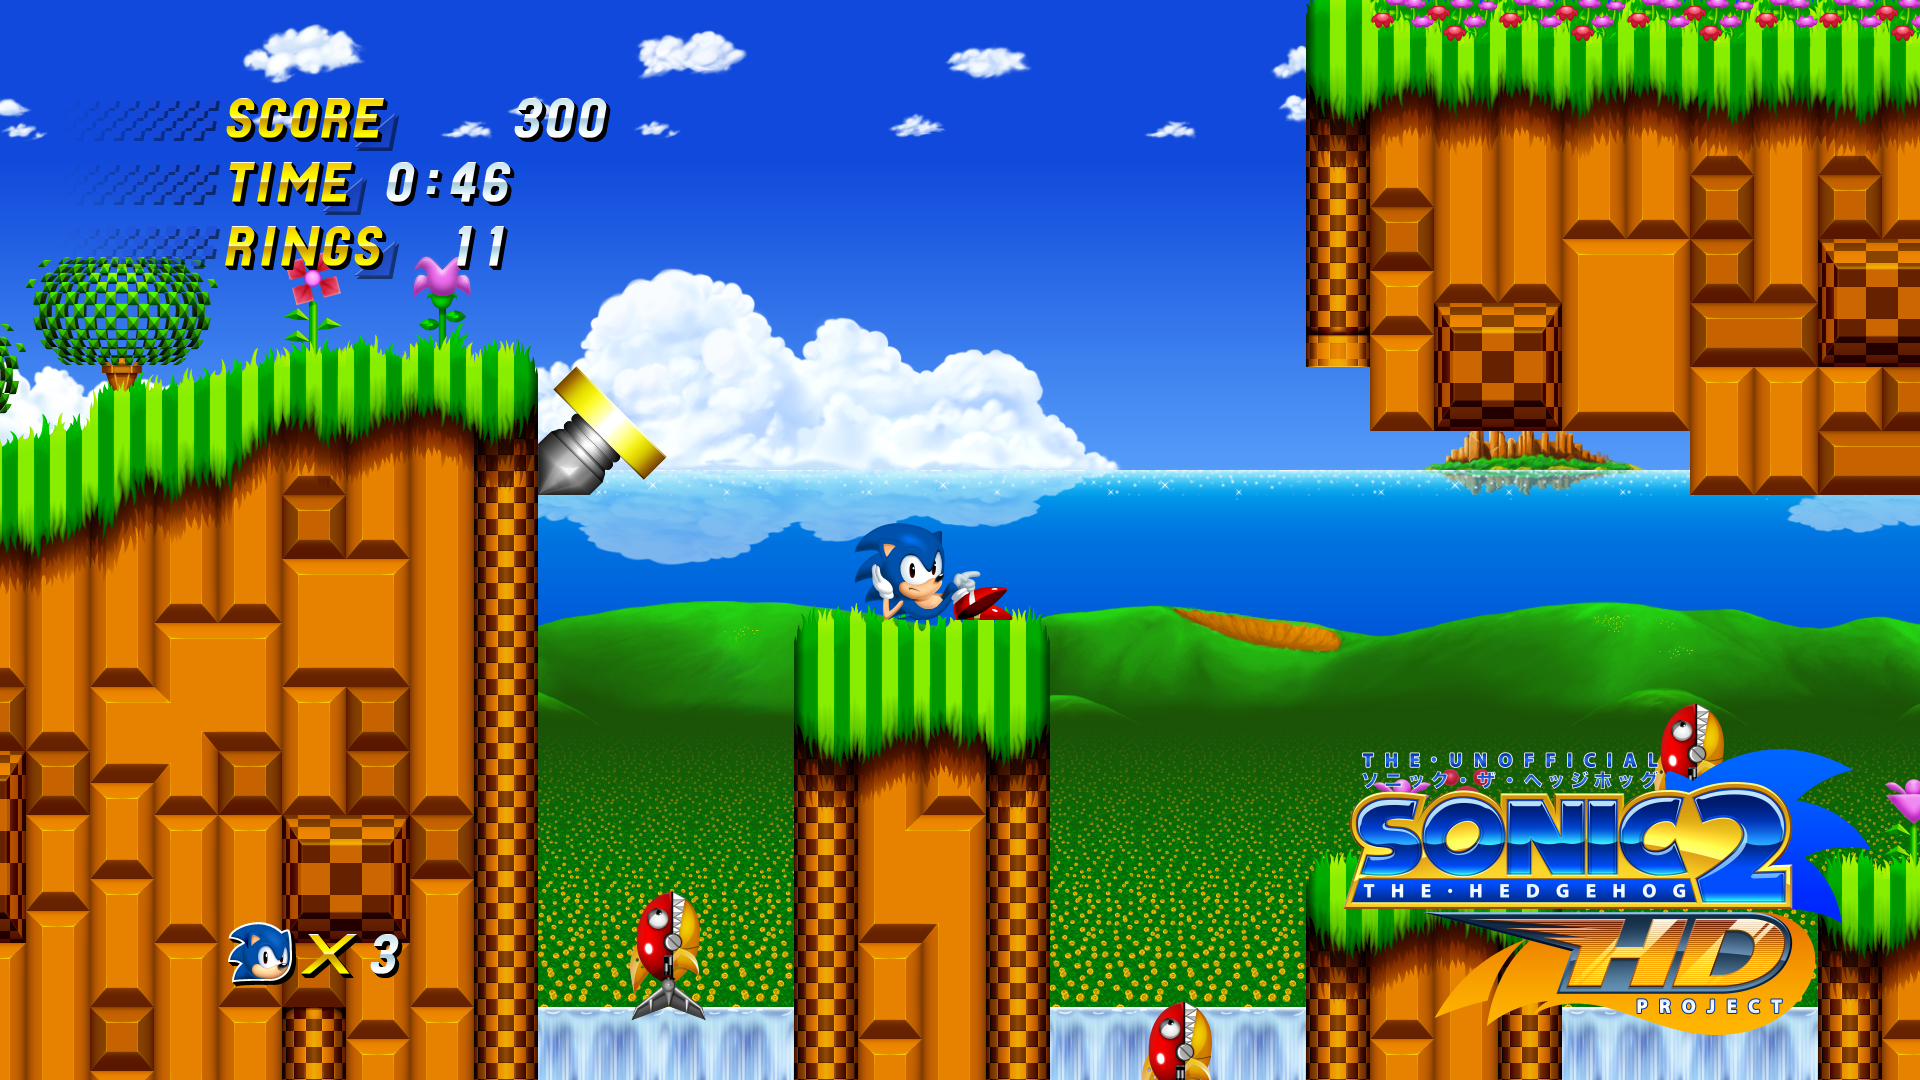 Sonic 2 HD Project - Alpha Version Released - DSOGaming